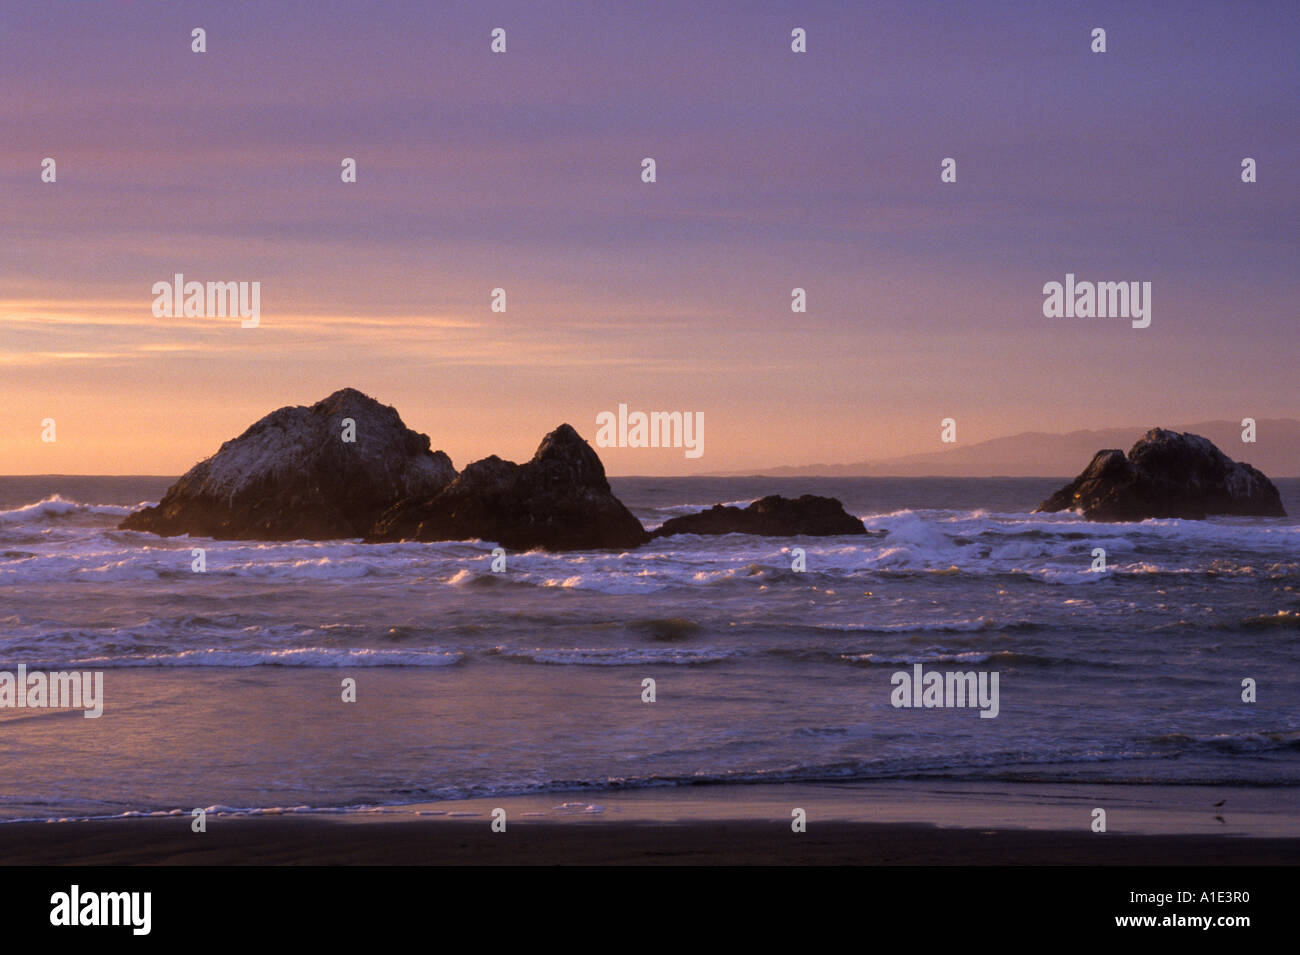 Seal Rocks during sunset Ocean Beach, San Francisco, California, United States of America - Stock Image